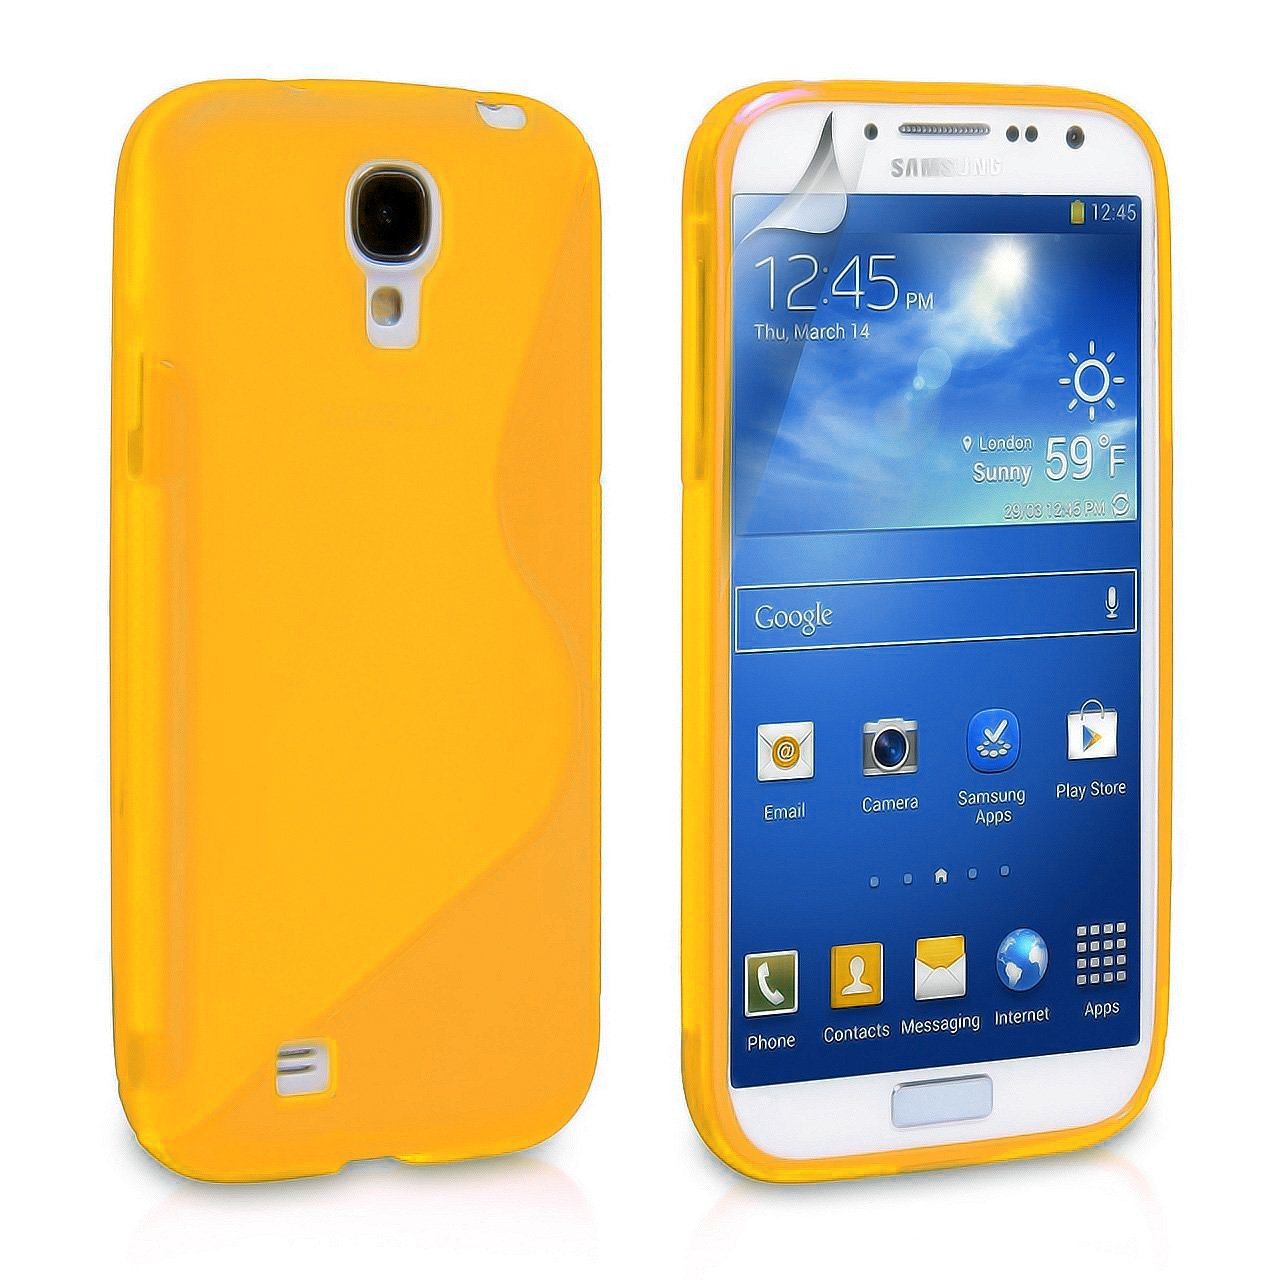 Phone Cases For Samsung Galaxy S4, Samsung Galaxy S4 Case [Orange] Rugged Drop Impact Resistant Skin IV i9500 Tough Strong Protective Soft Jelly Shell Cover ...